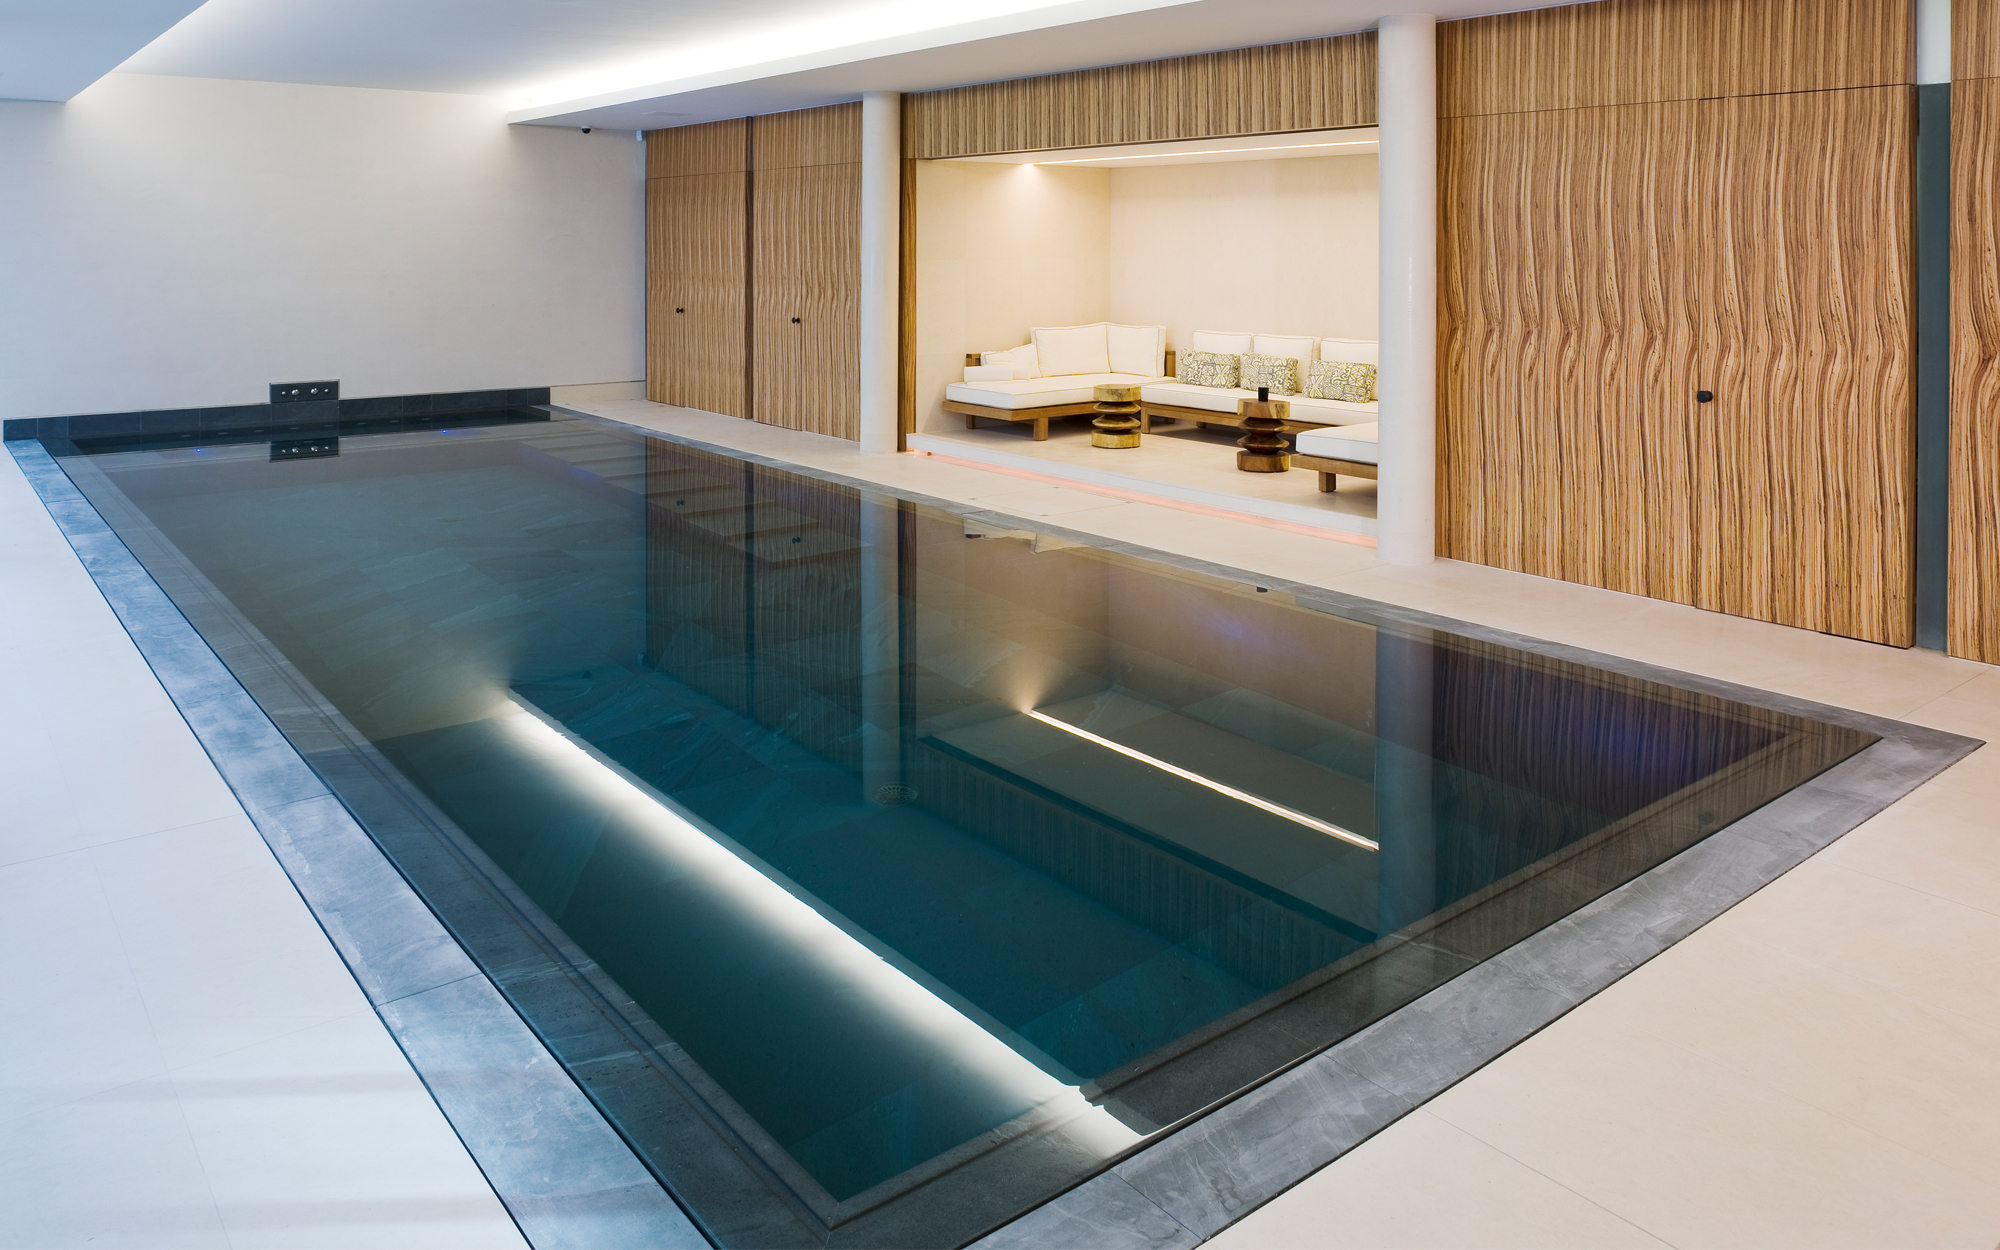 Indoor Pool Design Ideas - Home is Best Place to Return